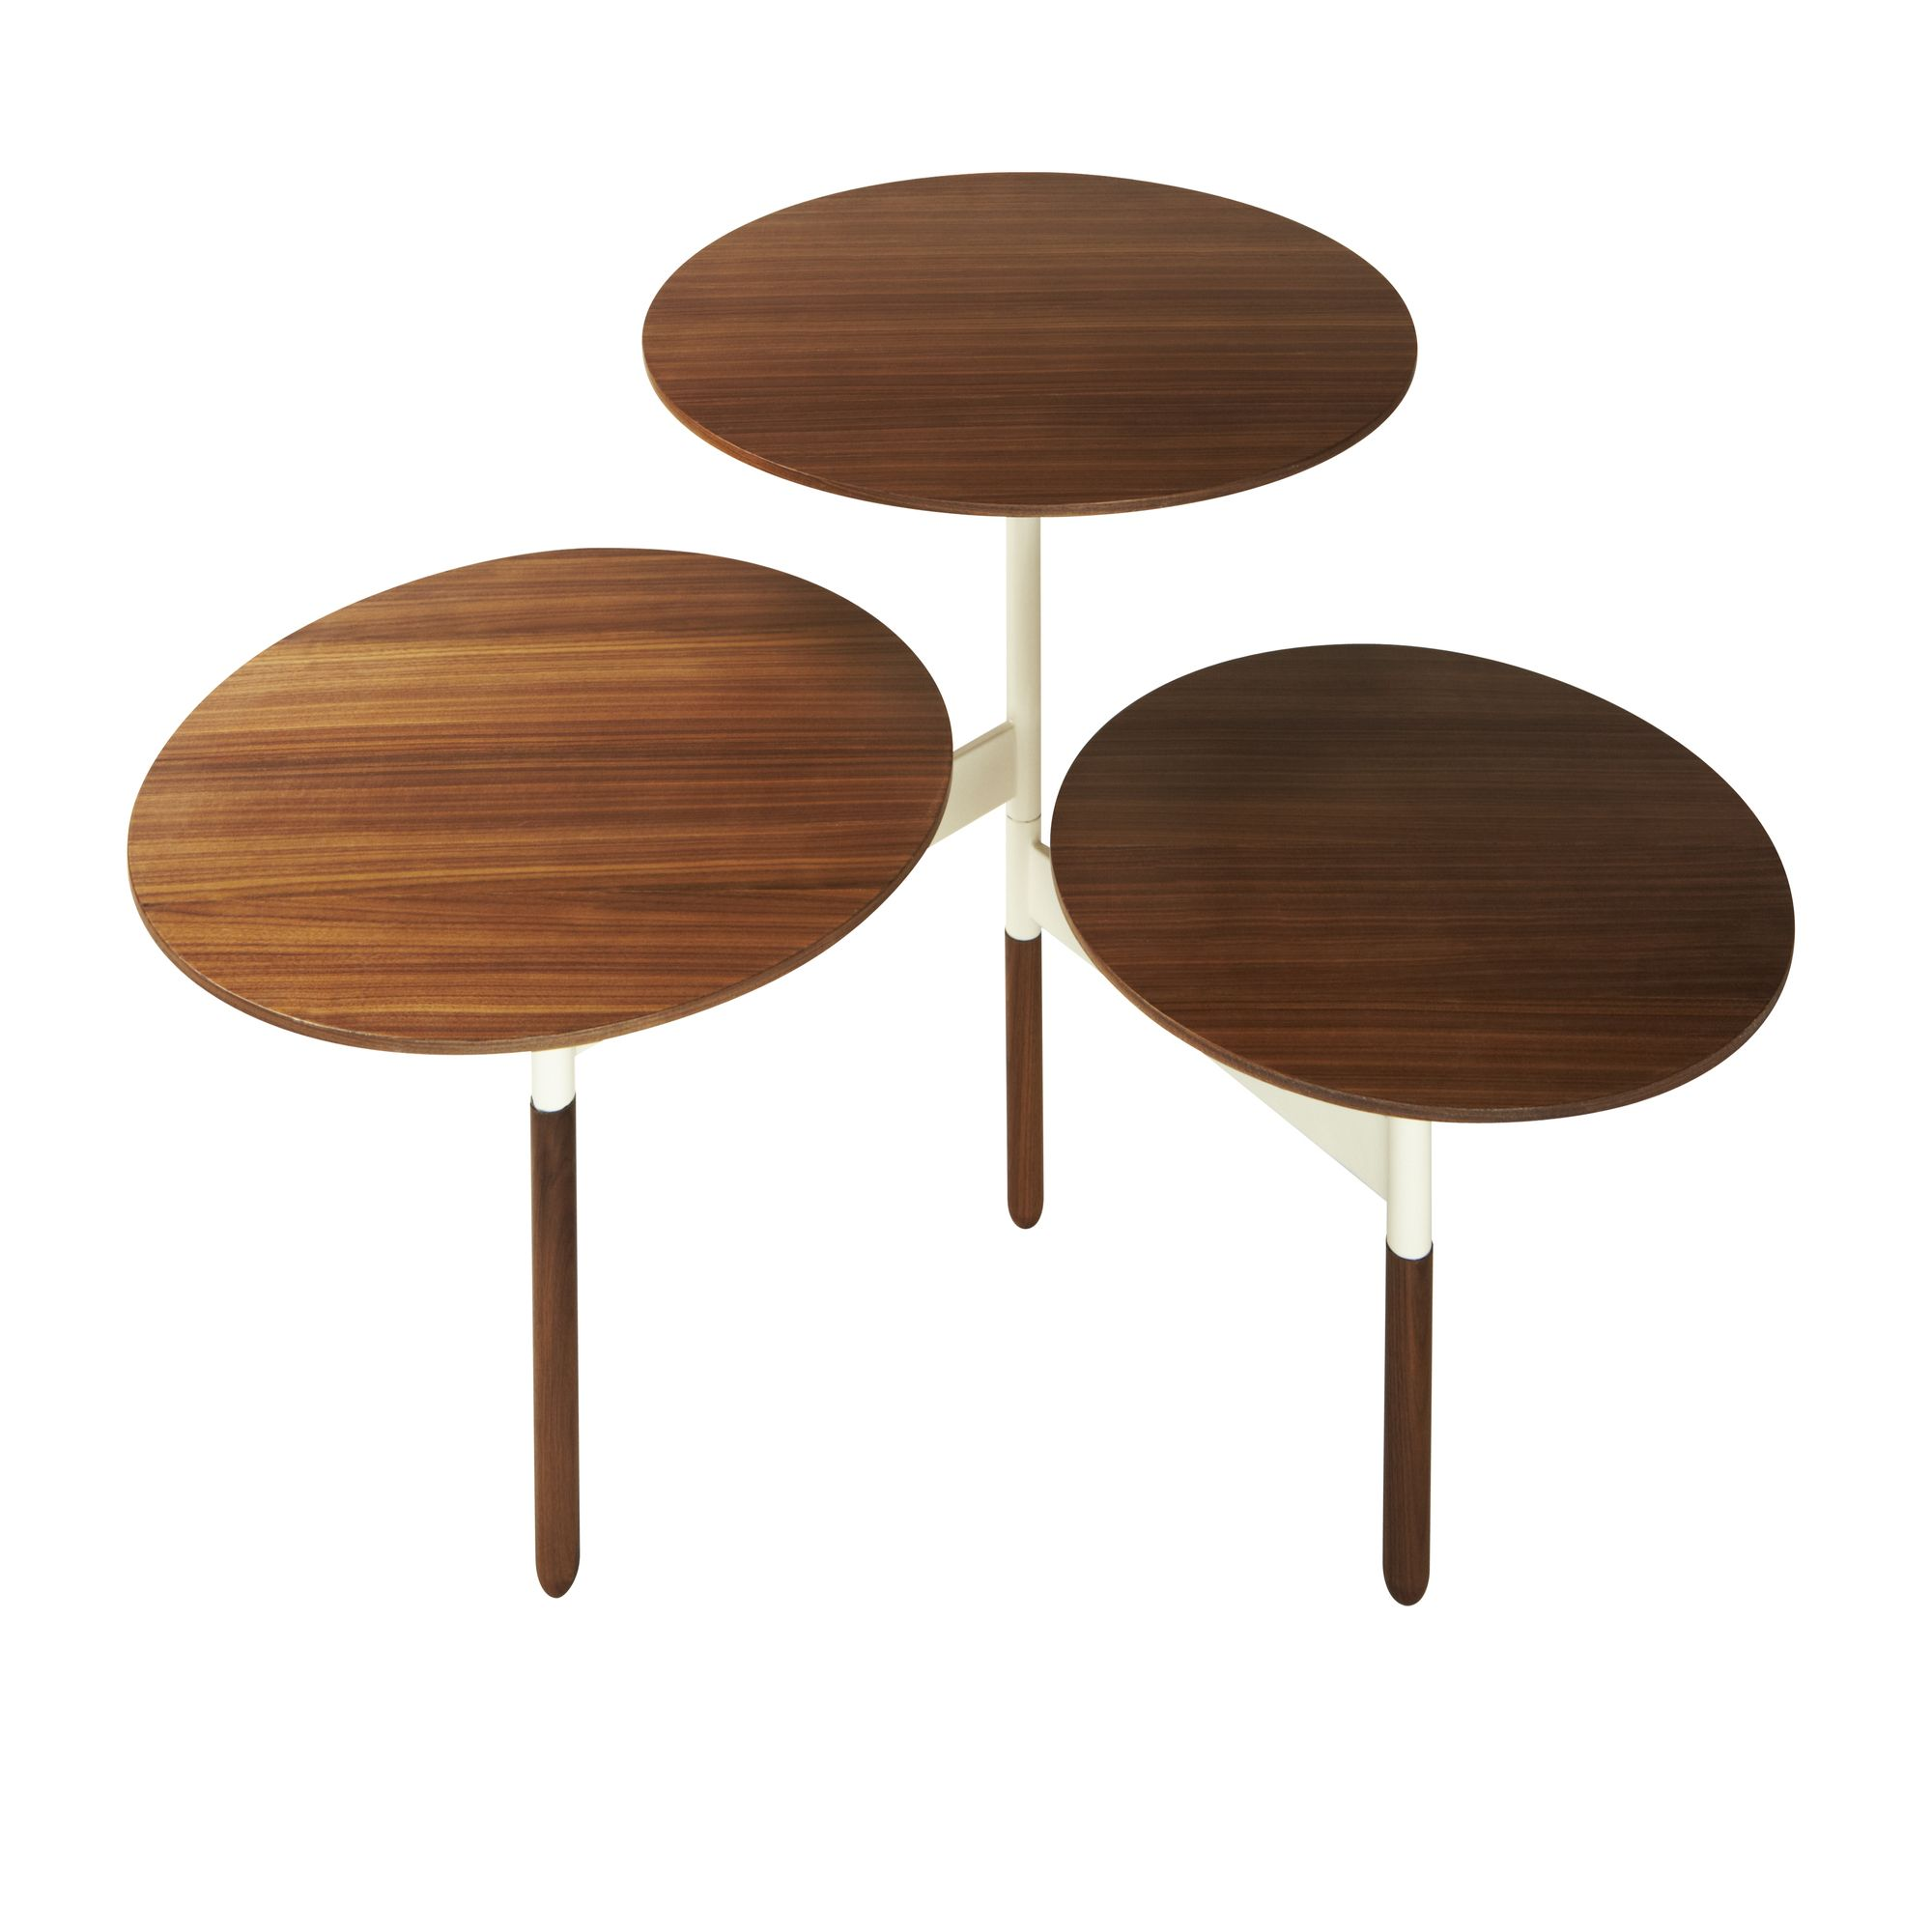 Blu Dot Lily Pad Coffee Table $399 Home